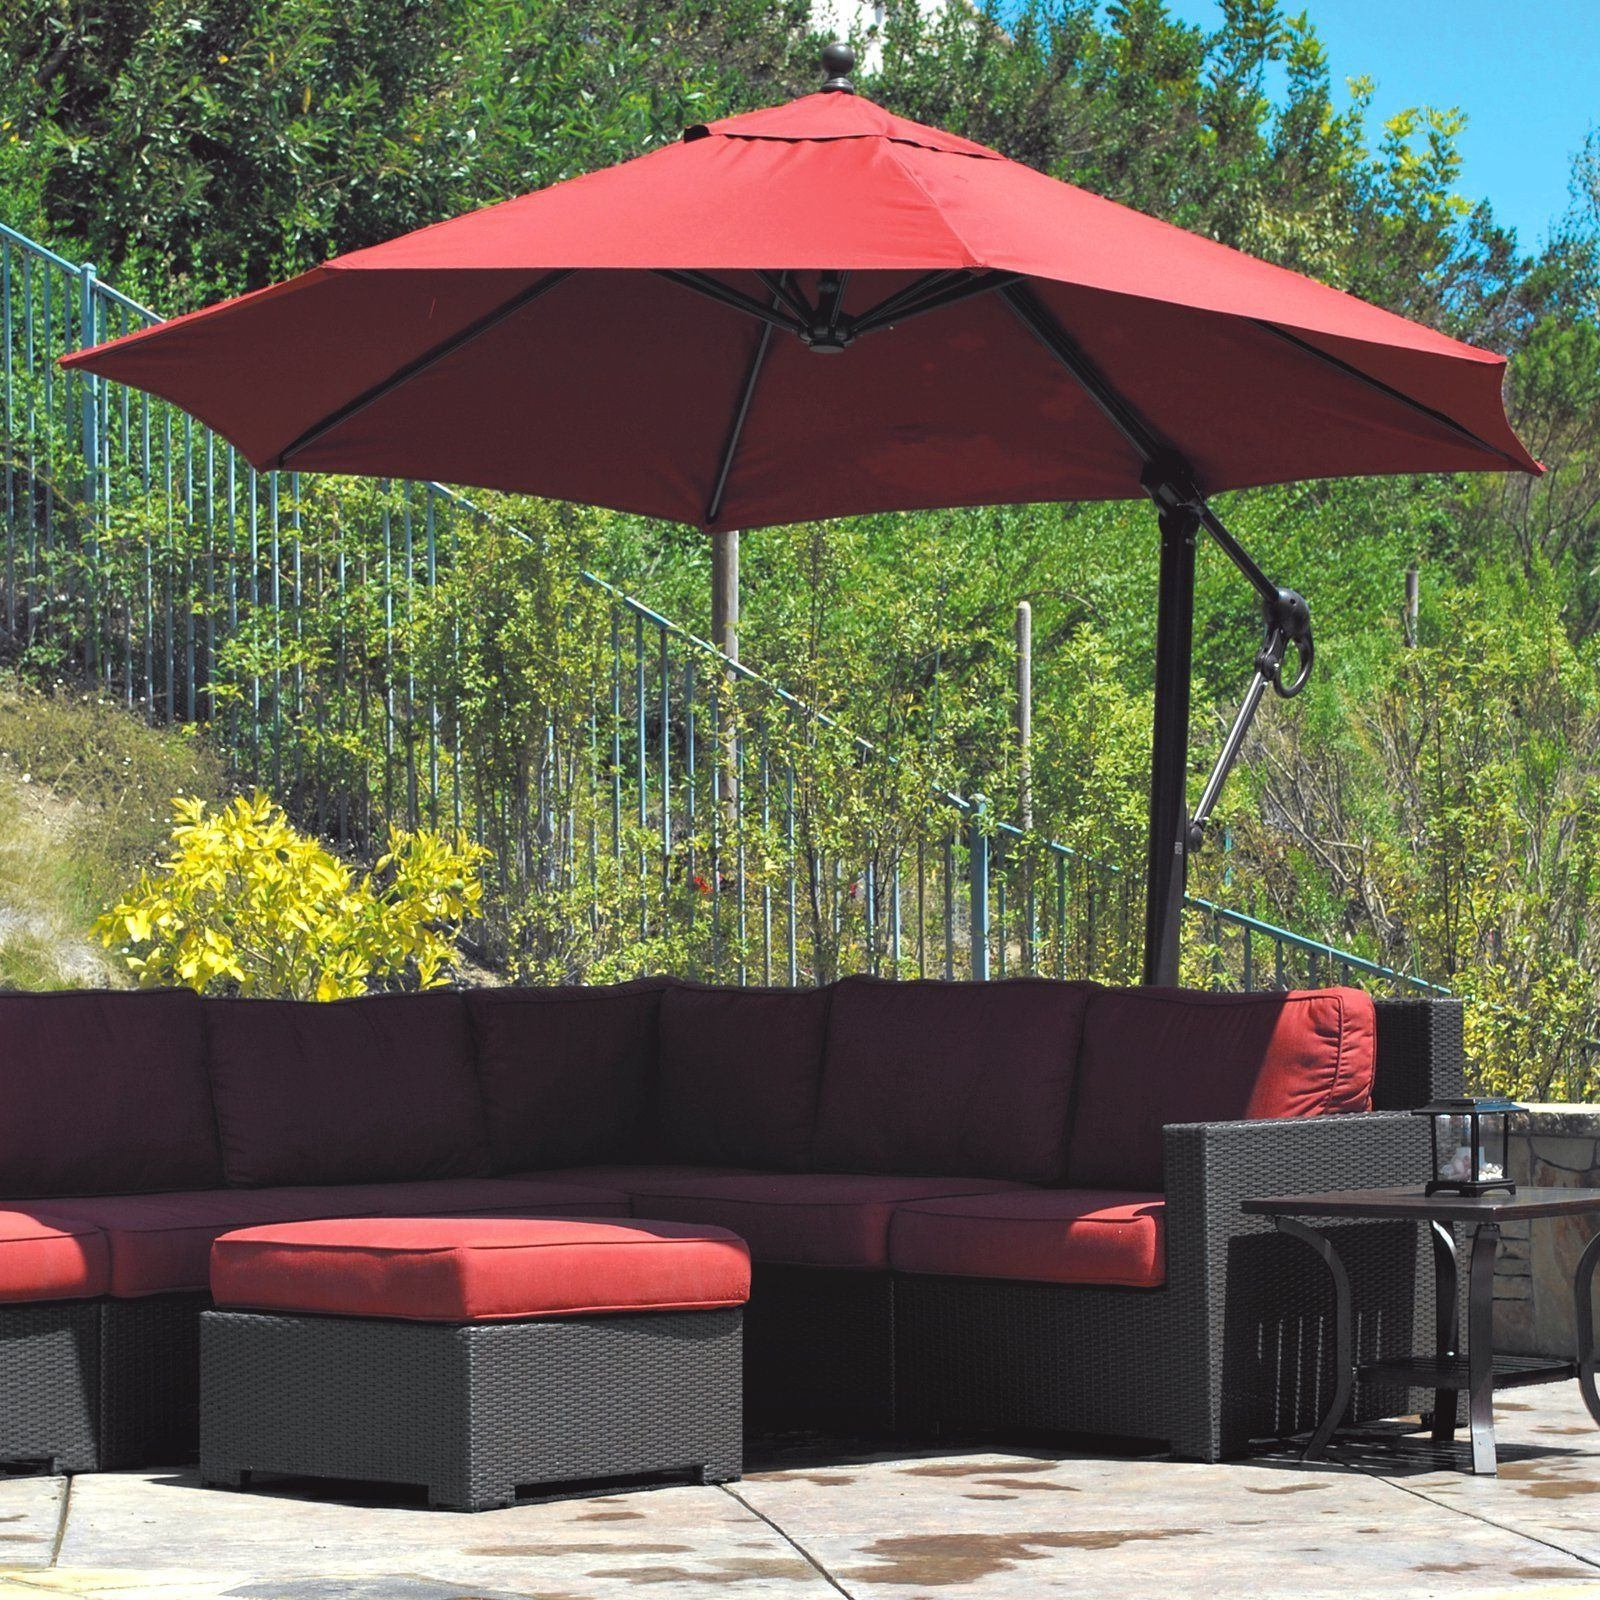 Widely Used Lowes Cantilever Patio Umbrellas Throughout Lowes Patio Umbrellas – Incredible Patio Umbrella Sale Elegant Cool (View 20 of 20)